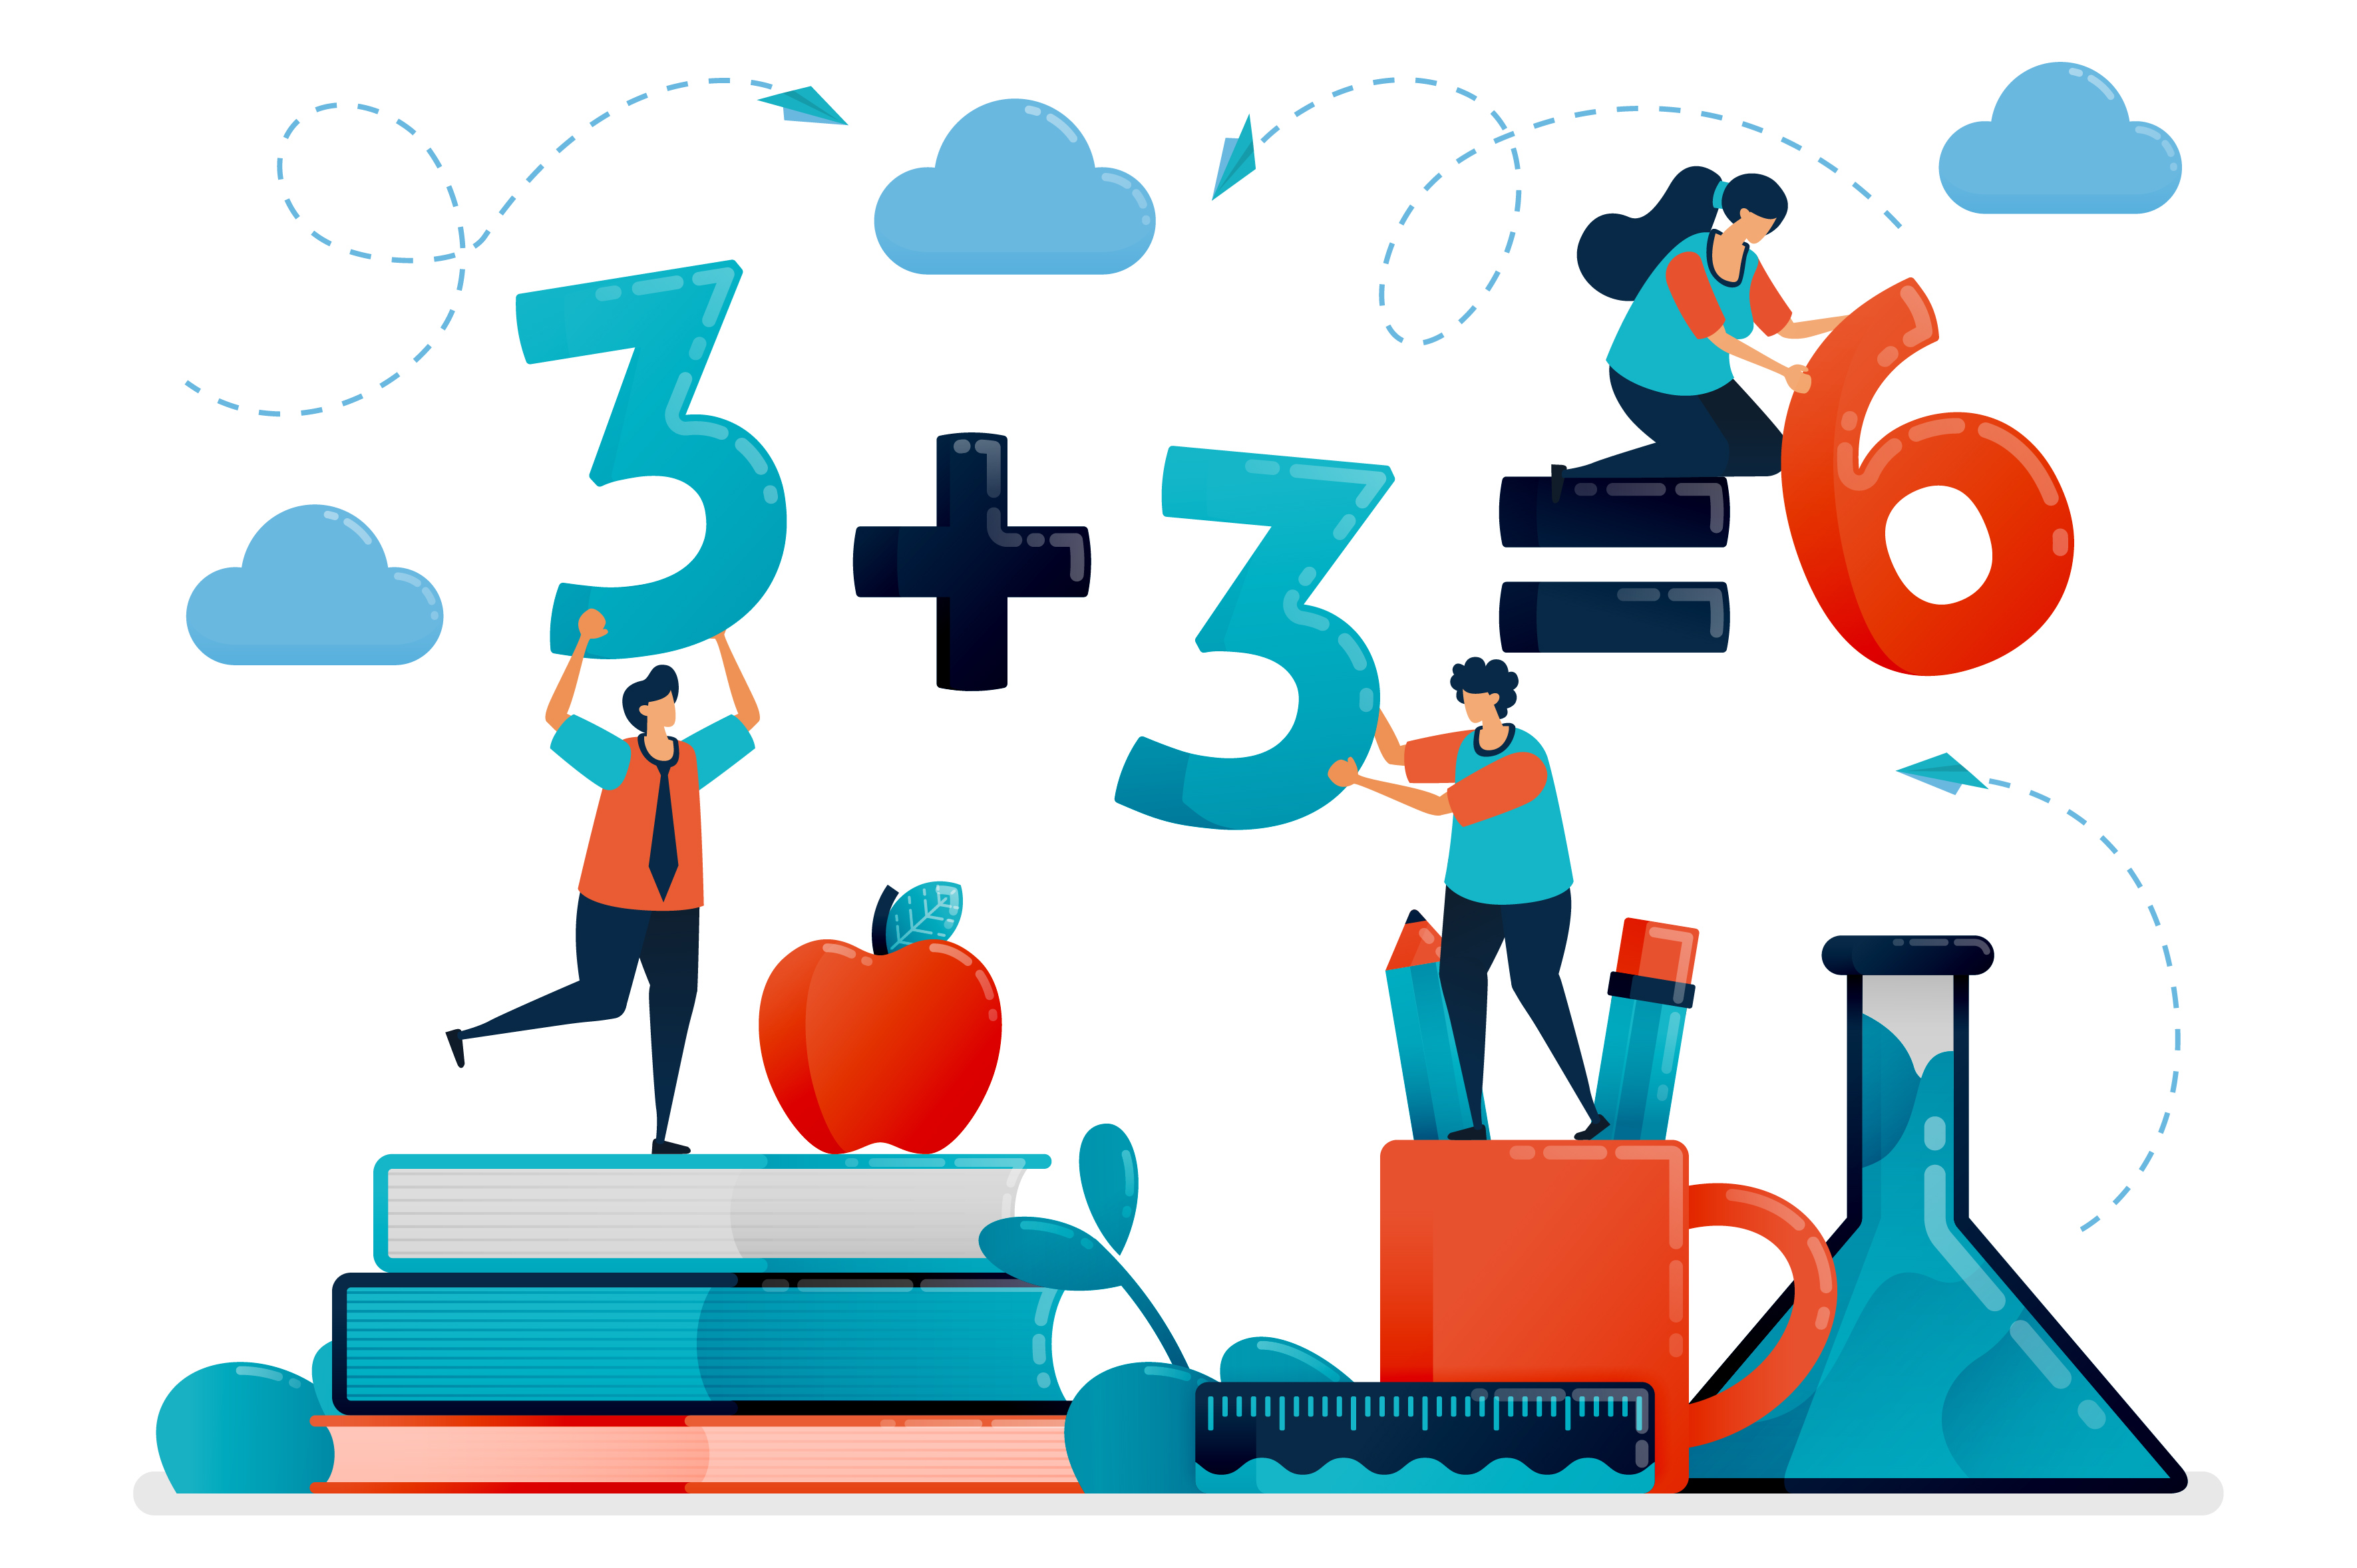 Download Free Illustration Of Education For Children Graphic By for Cricut Explore, Silhouette and other cutting machines.